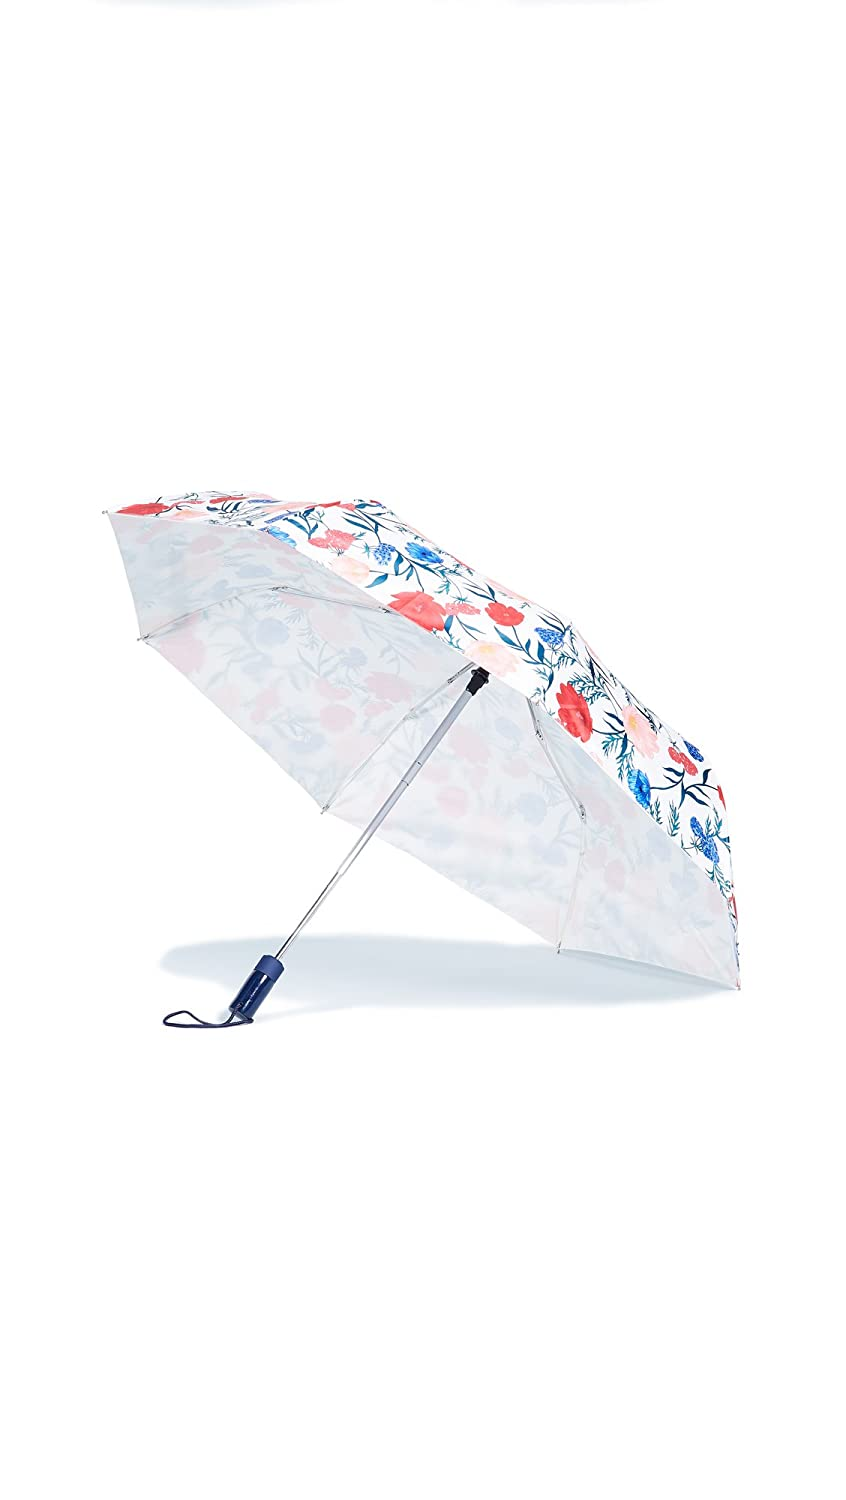 Kate Spade New York Women's Blossom Umbrella Red/White Multi One Size Lifeguard Press